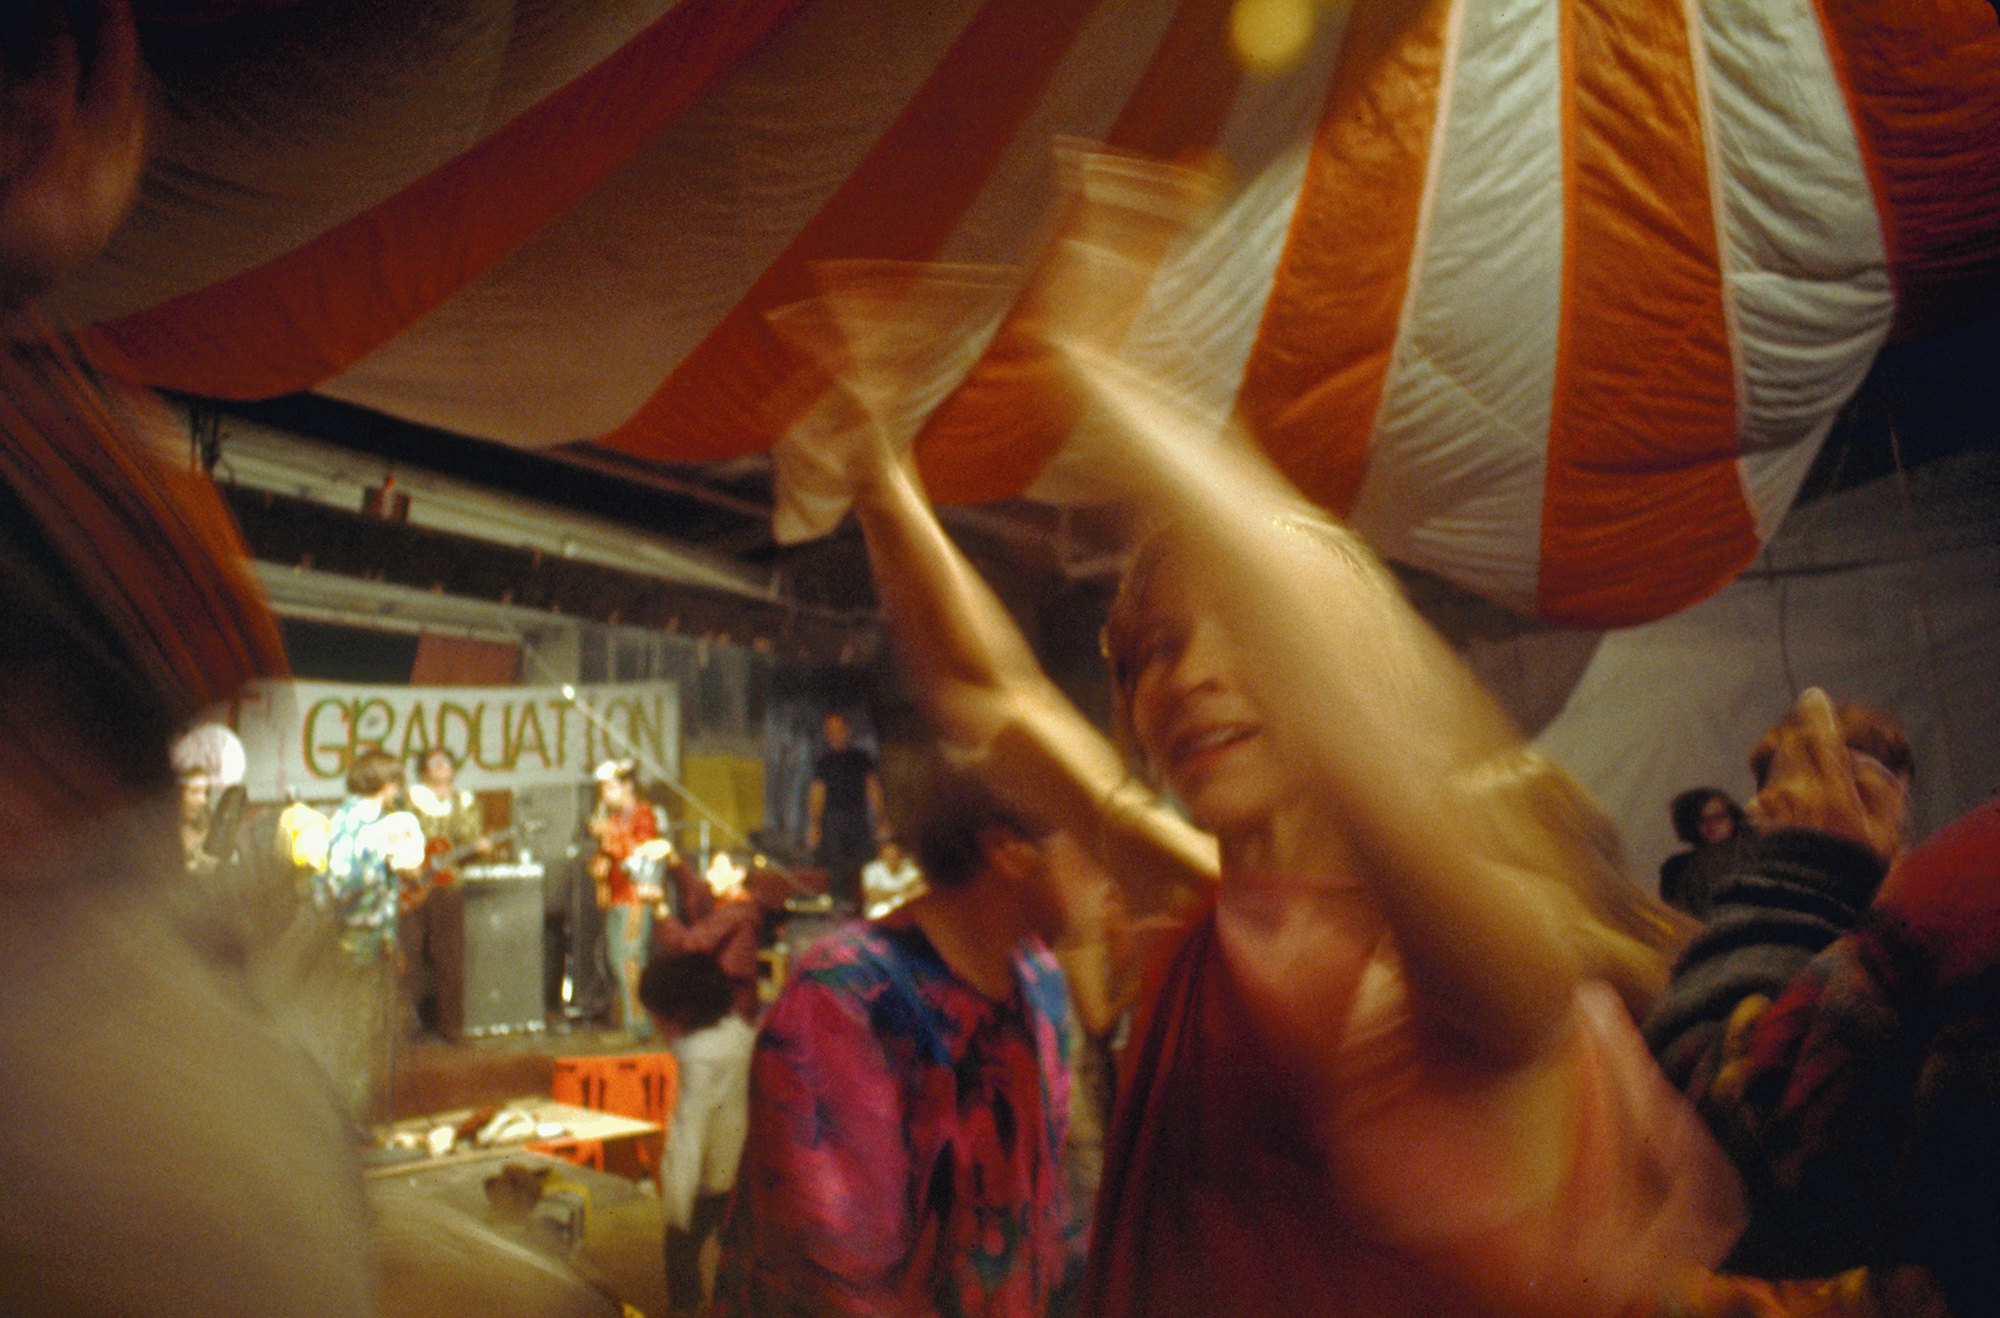 People dance at the Acid Test Graduation, a celebration organized by Ken Kesey and his Merry Pranksters, in which participants graduated